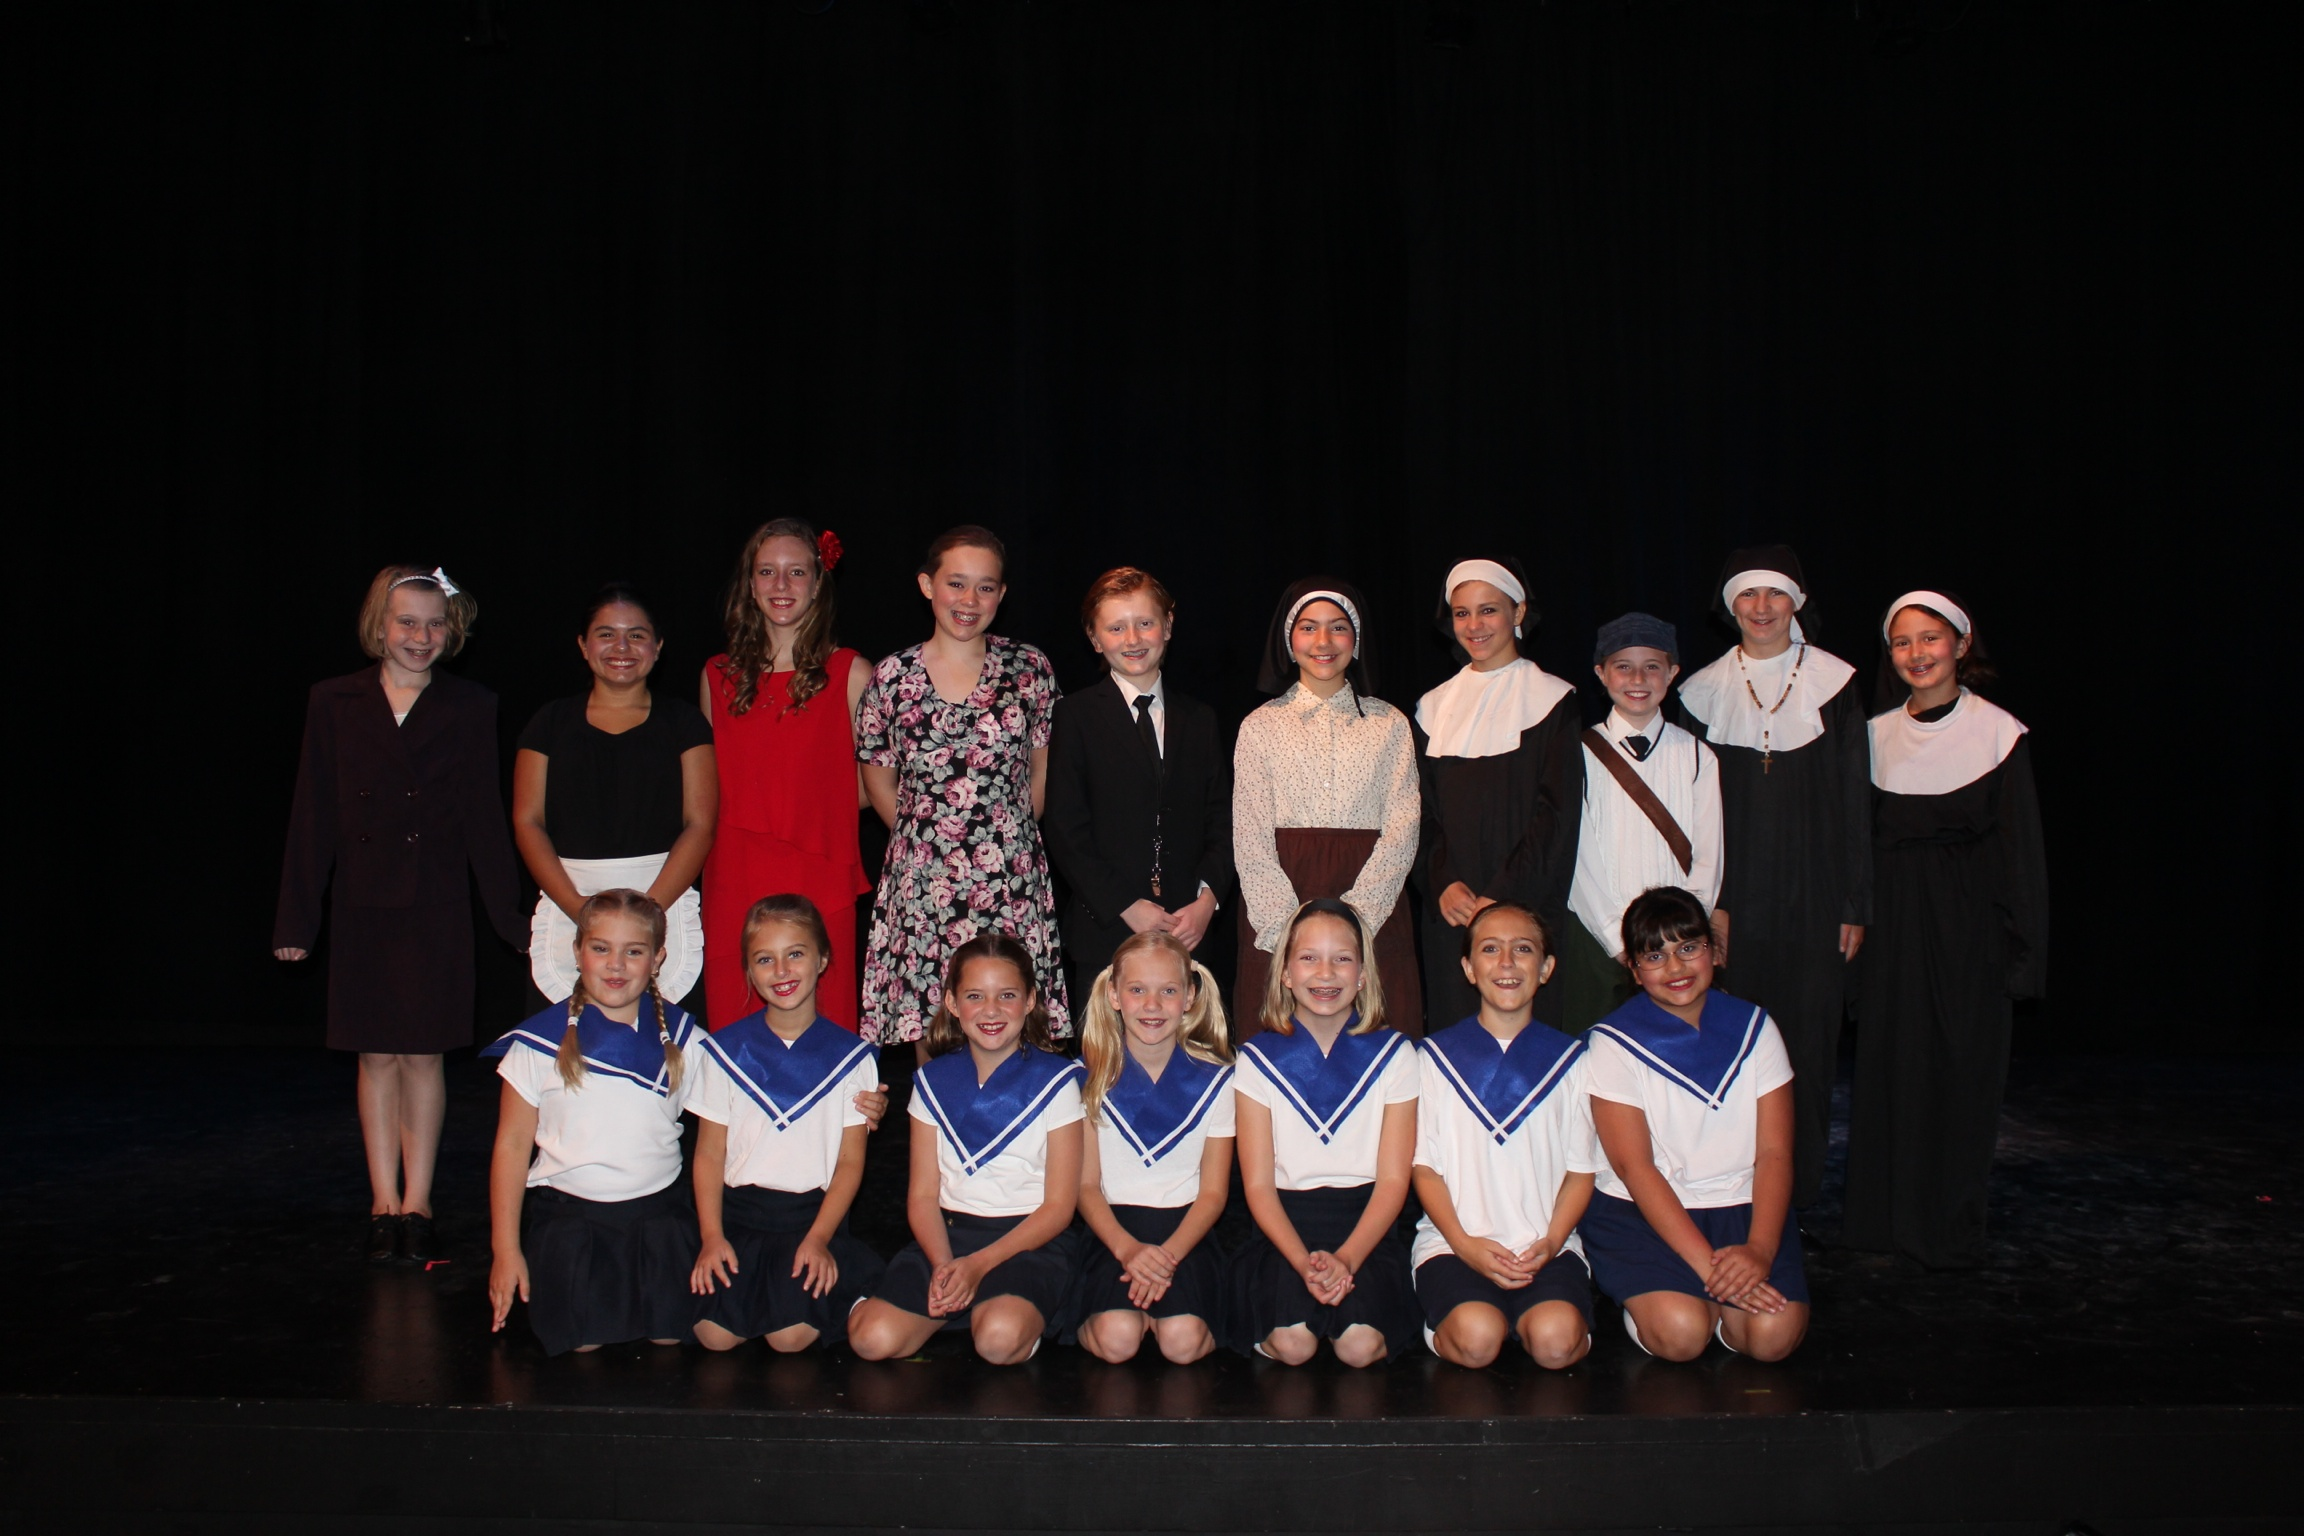 sound of music cast 2013